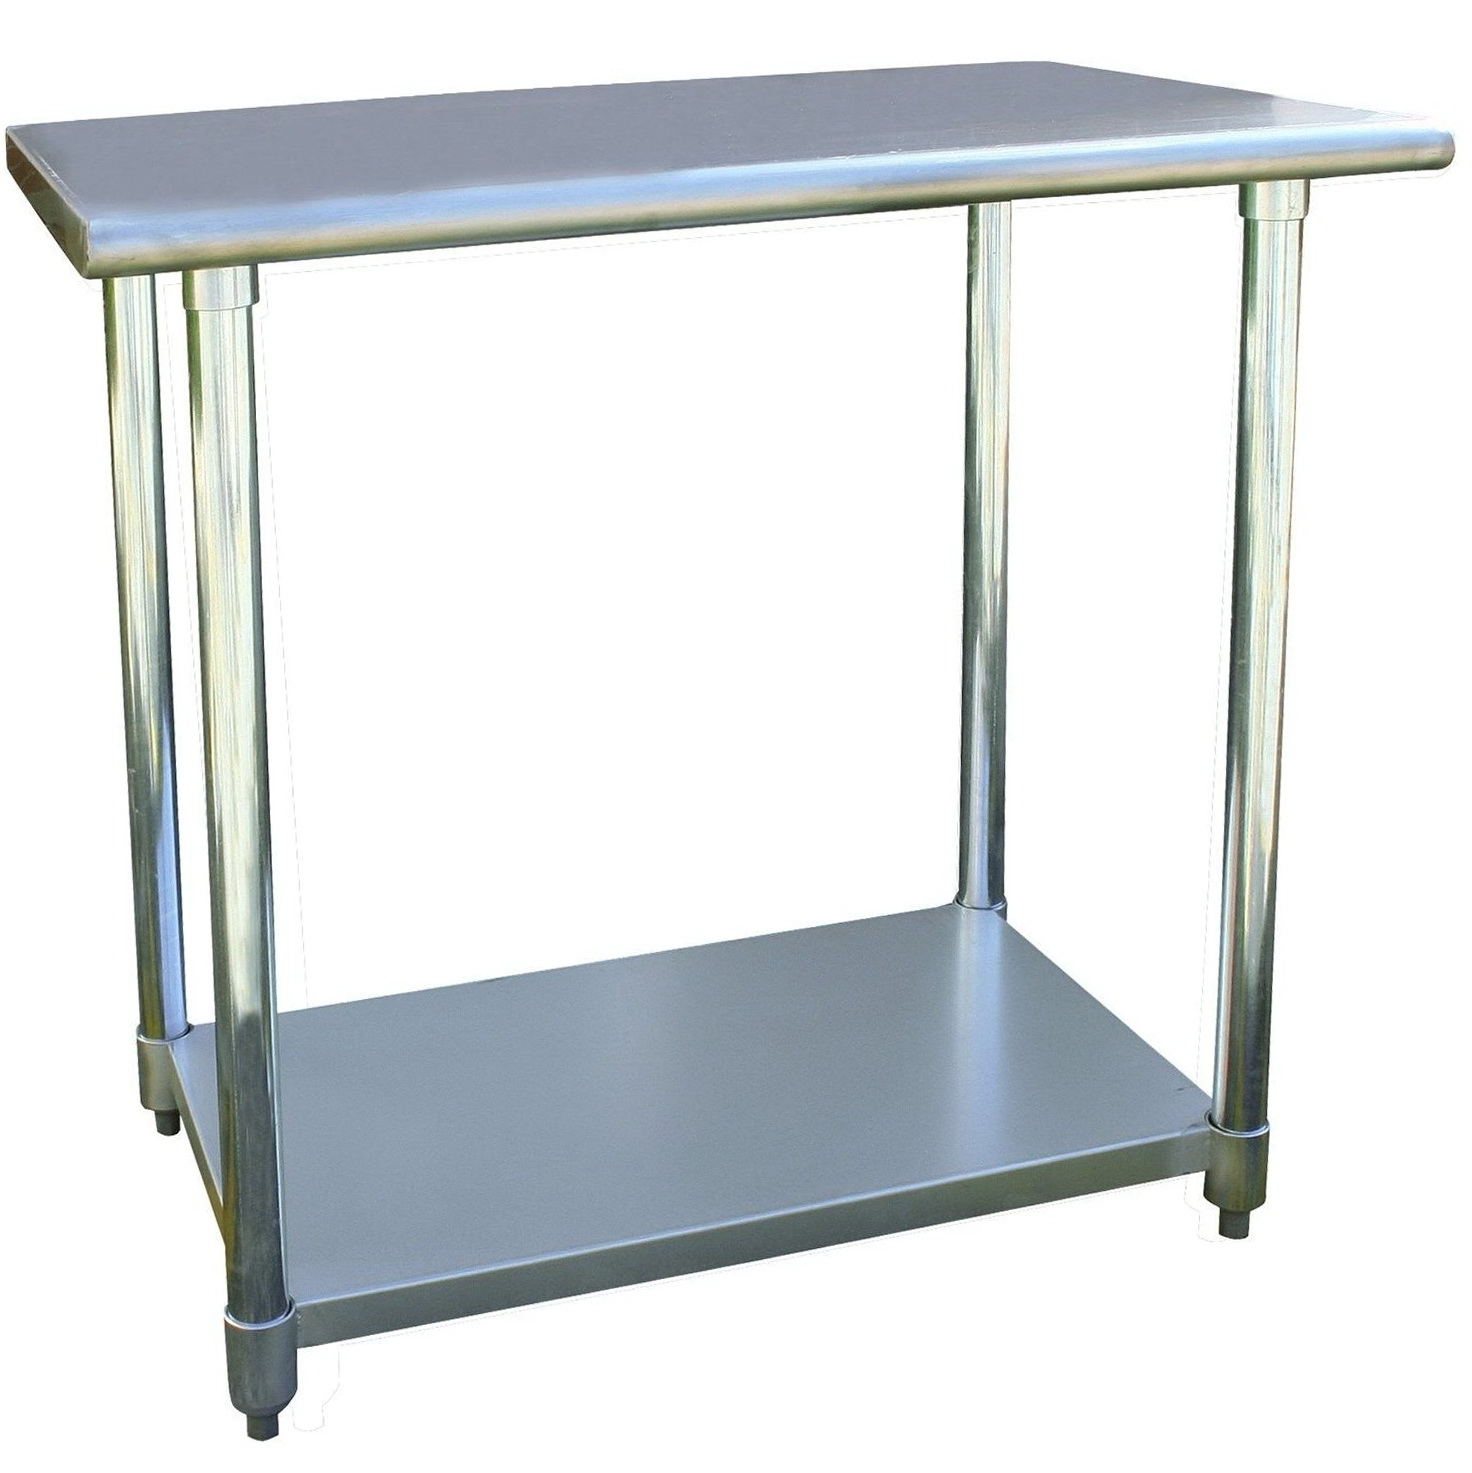 Stainless steel work bench home depot home design ideas Home depot benches